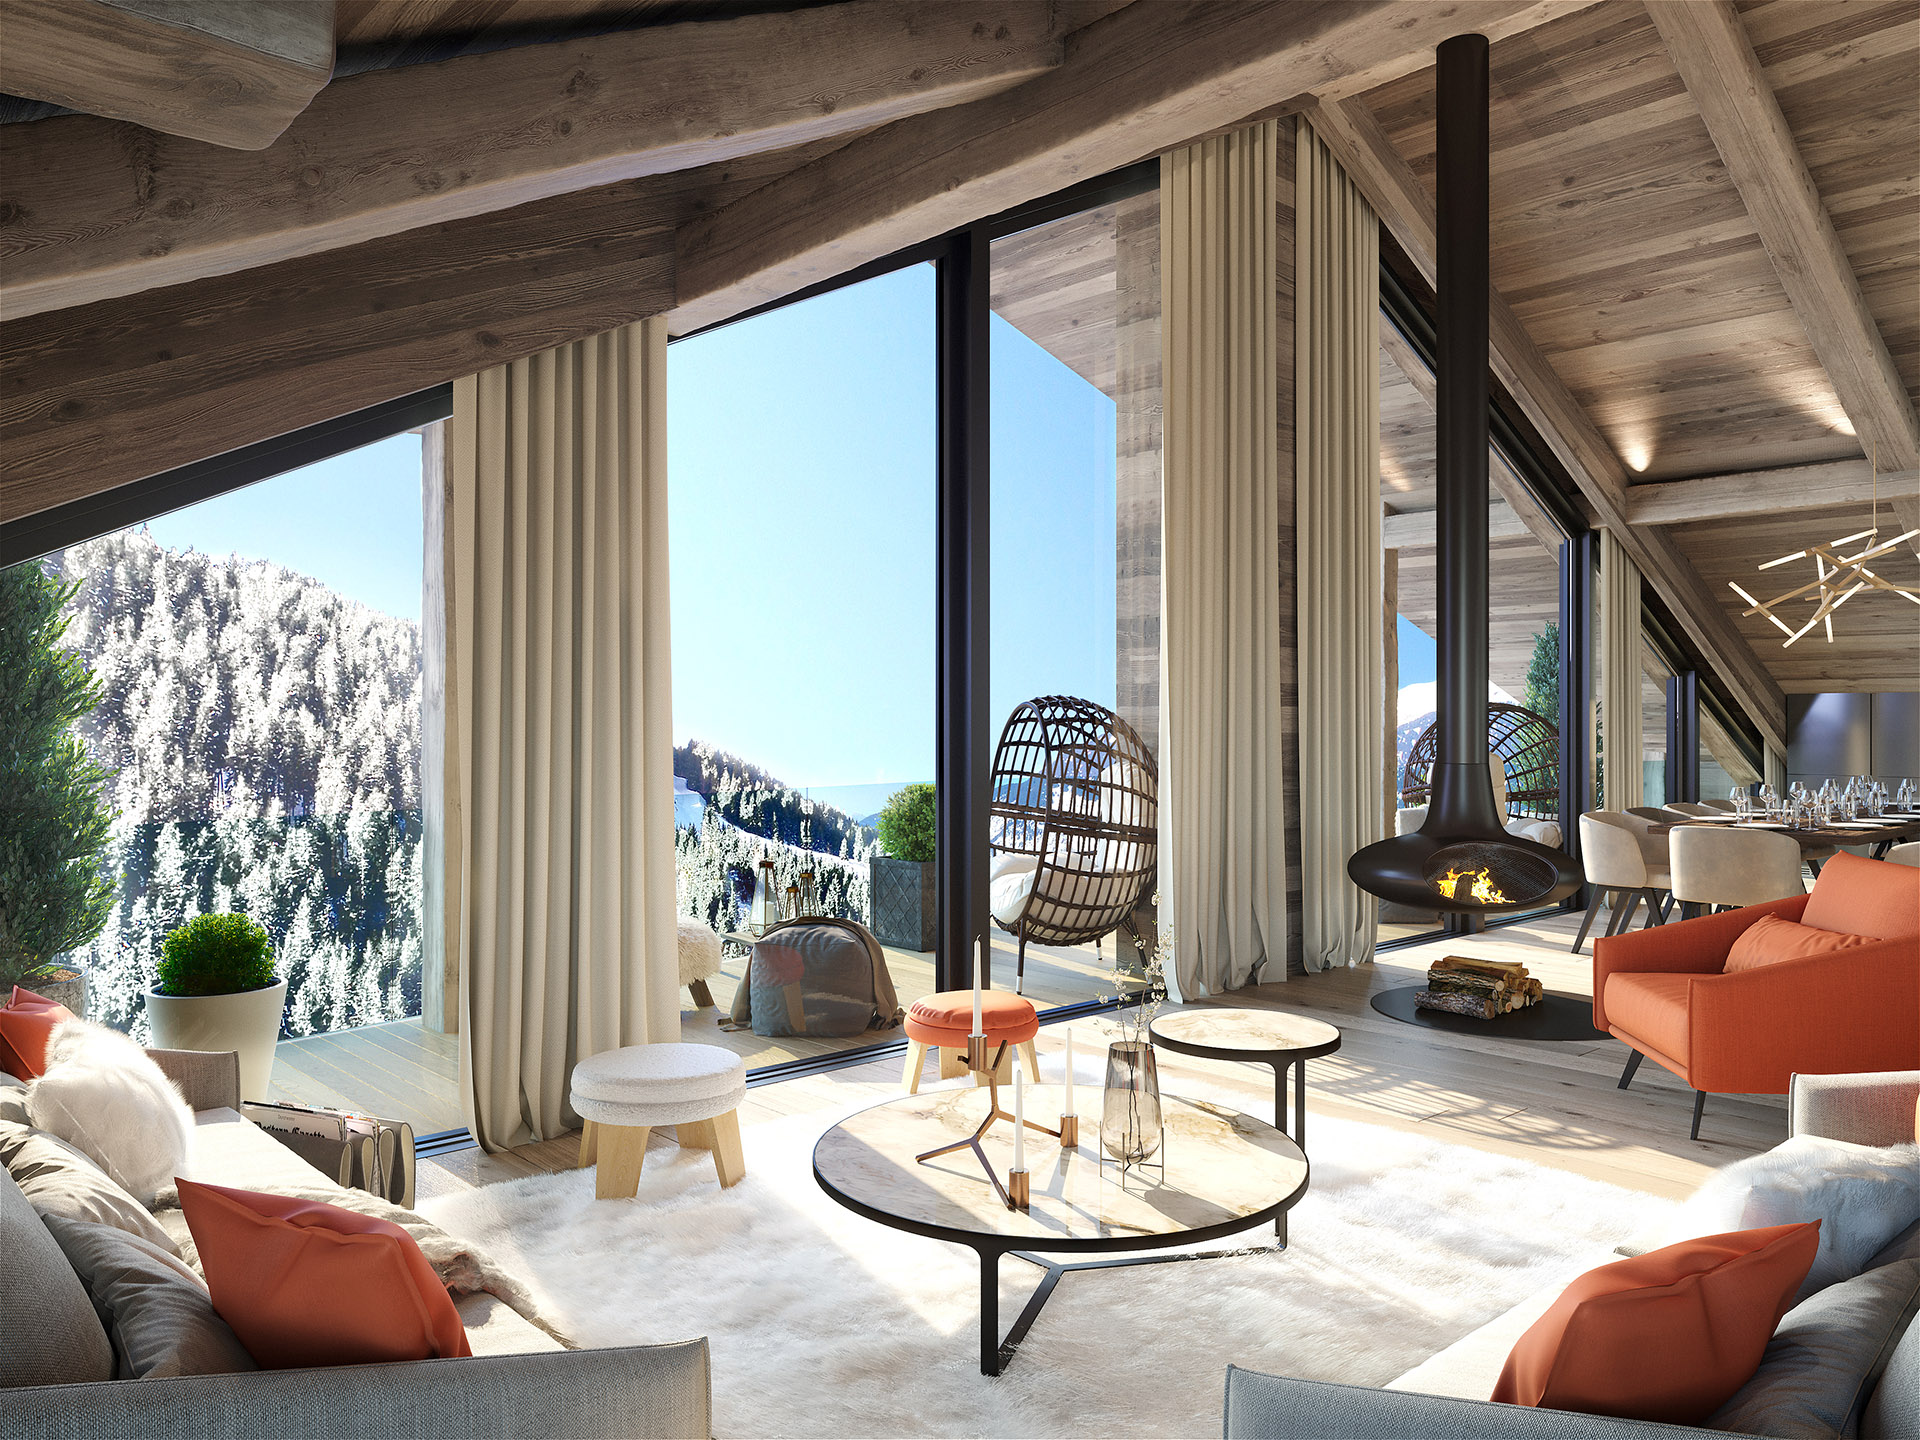 3D rendering of a chalet living room with terrace and mountain view